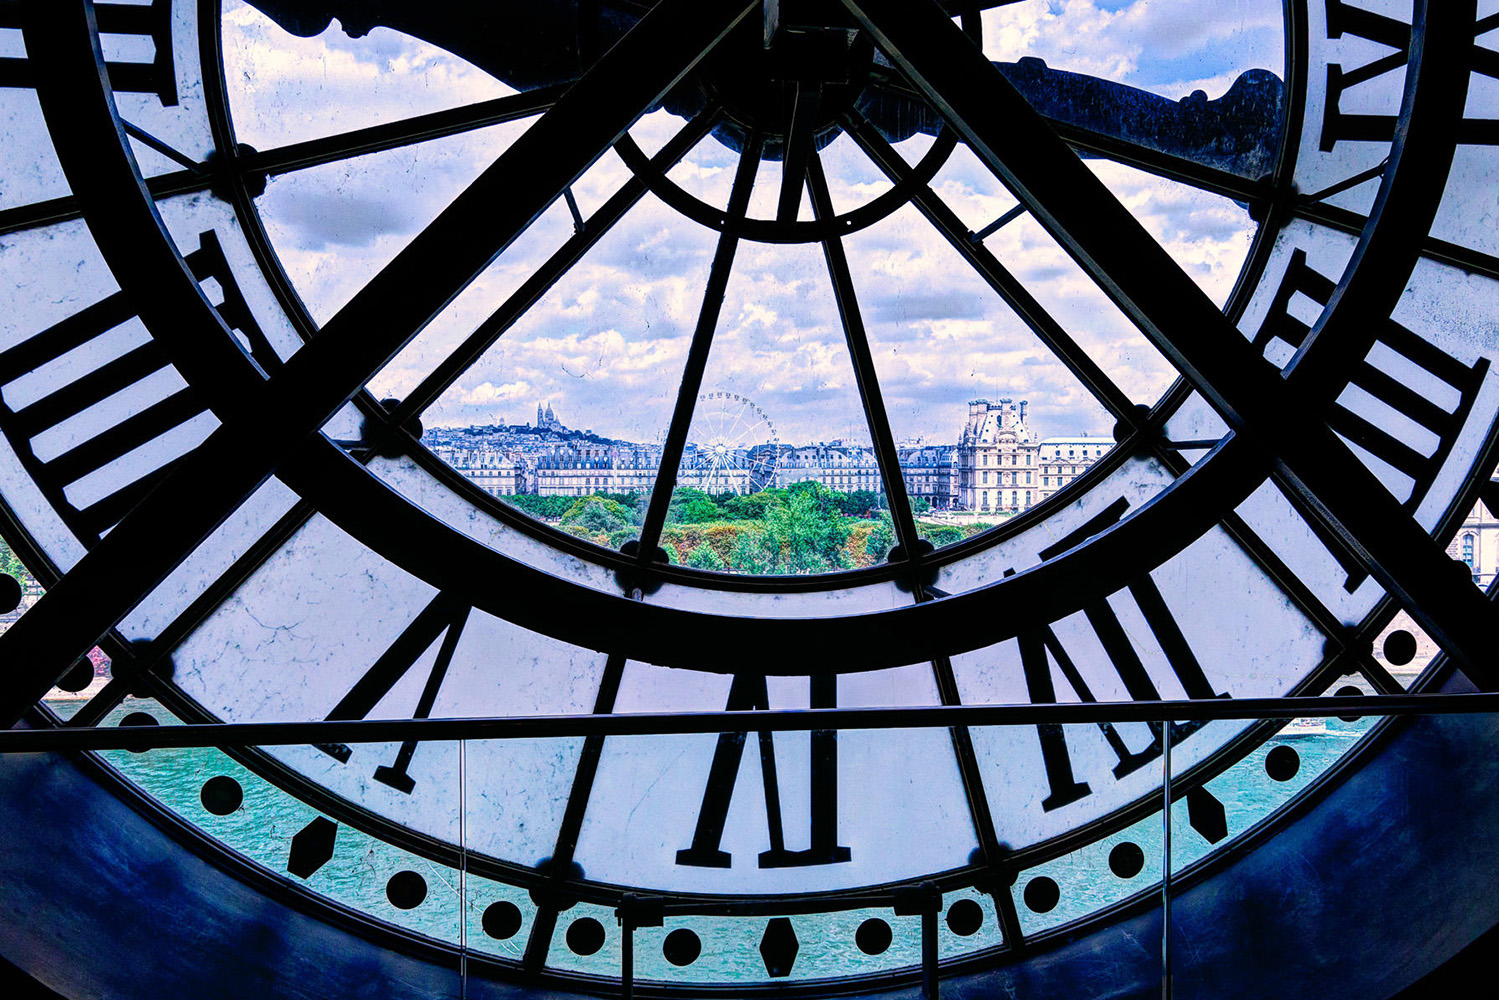 Metro Details about  /Magnetic dosenuhr clock with magnet in the Tin-Paris-Eiffel Tower show original title